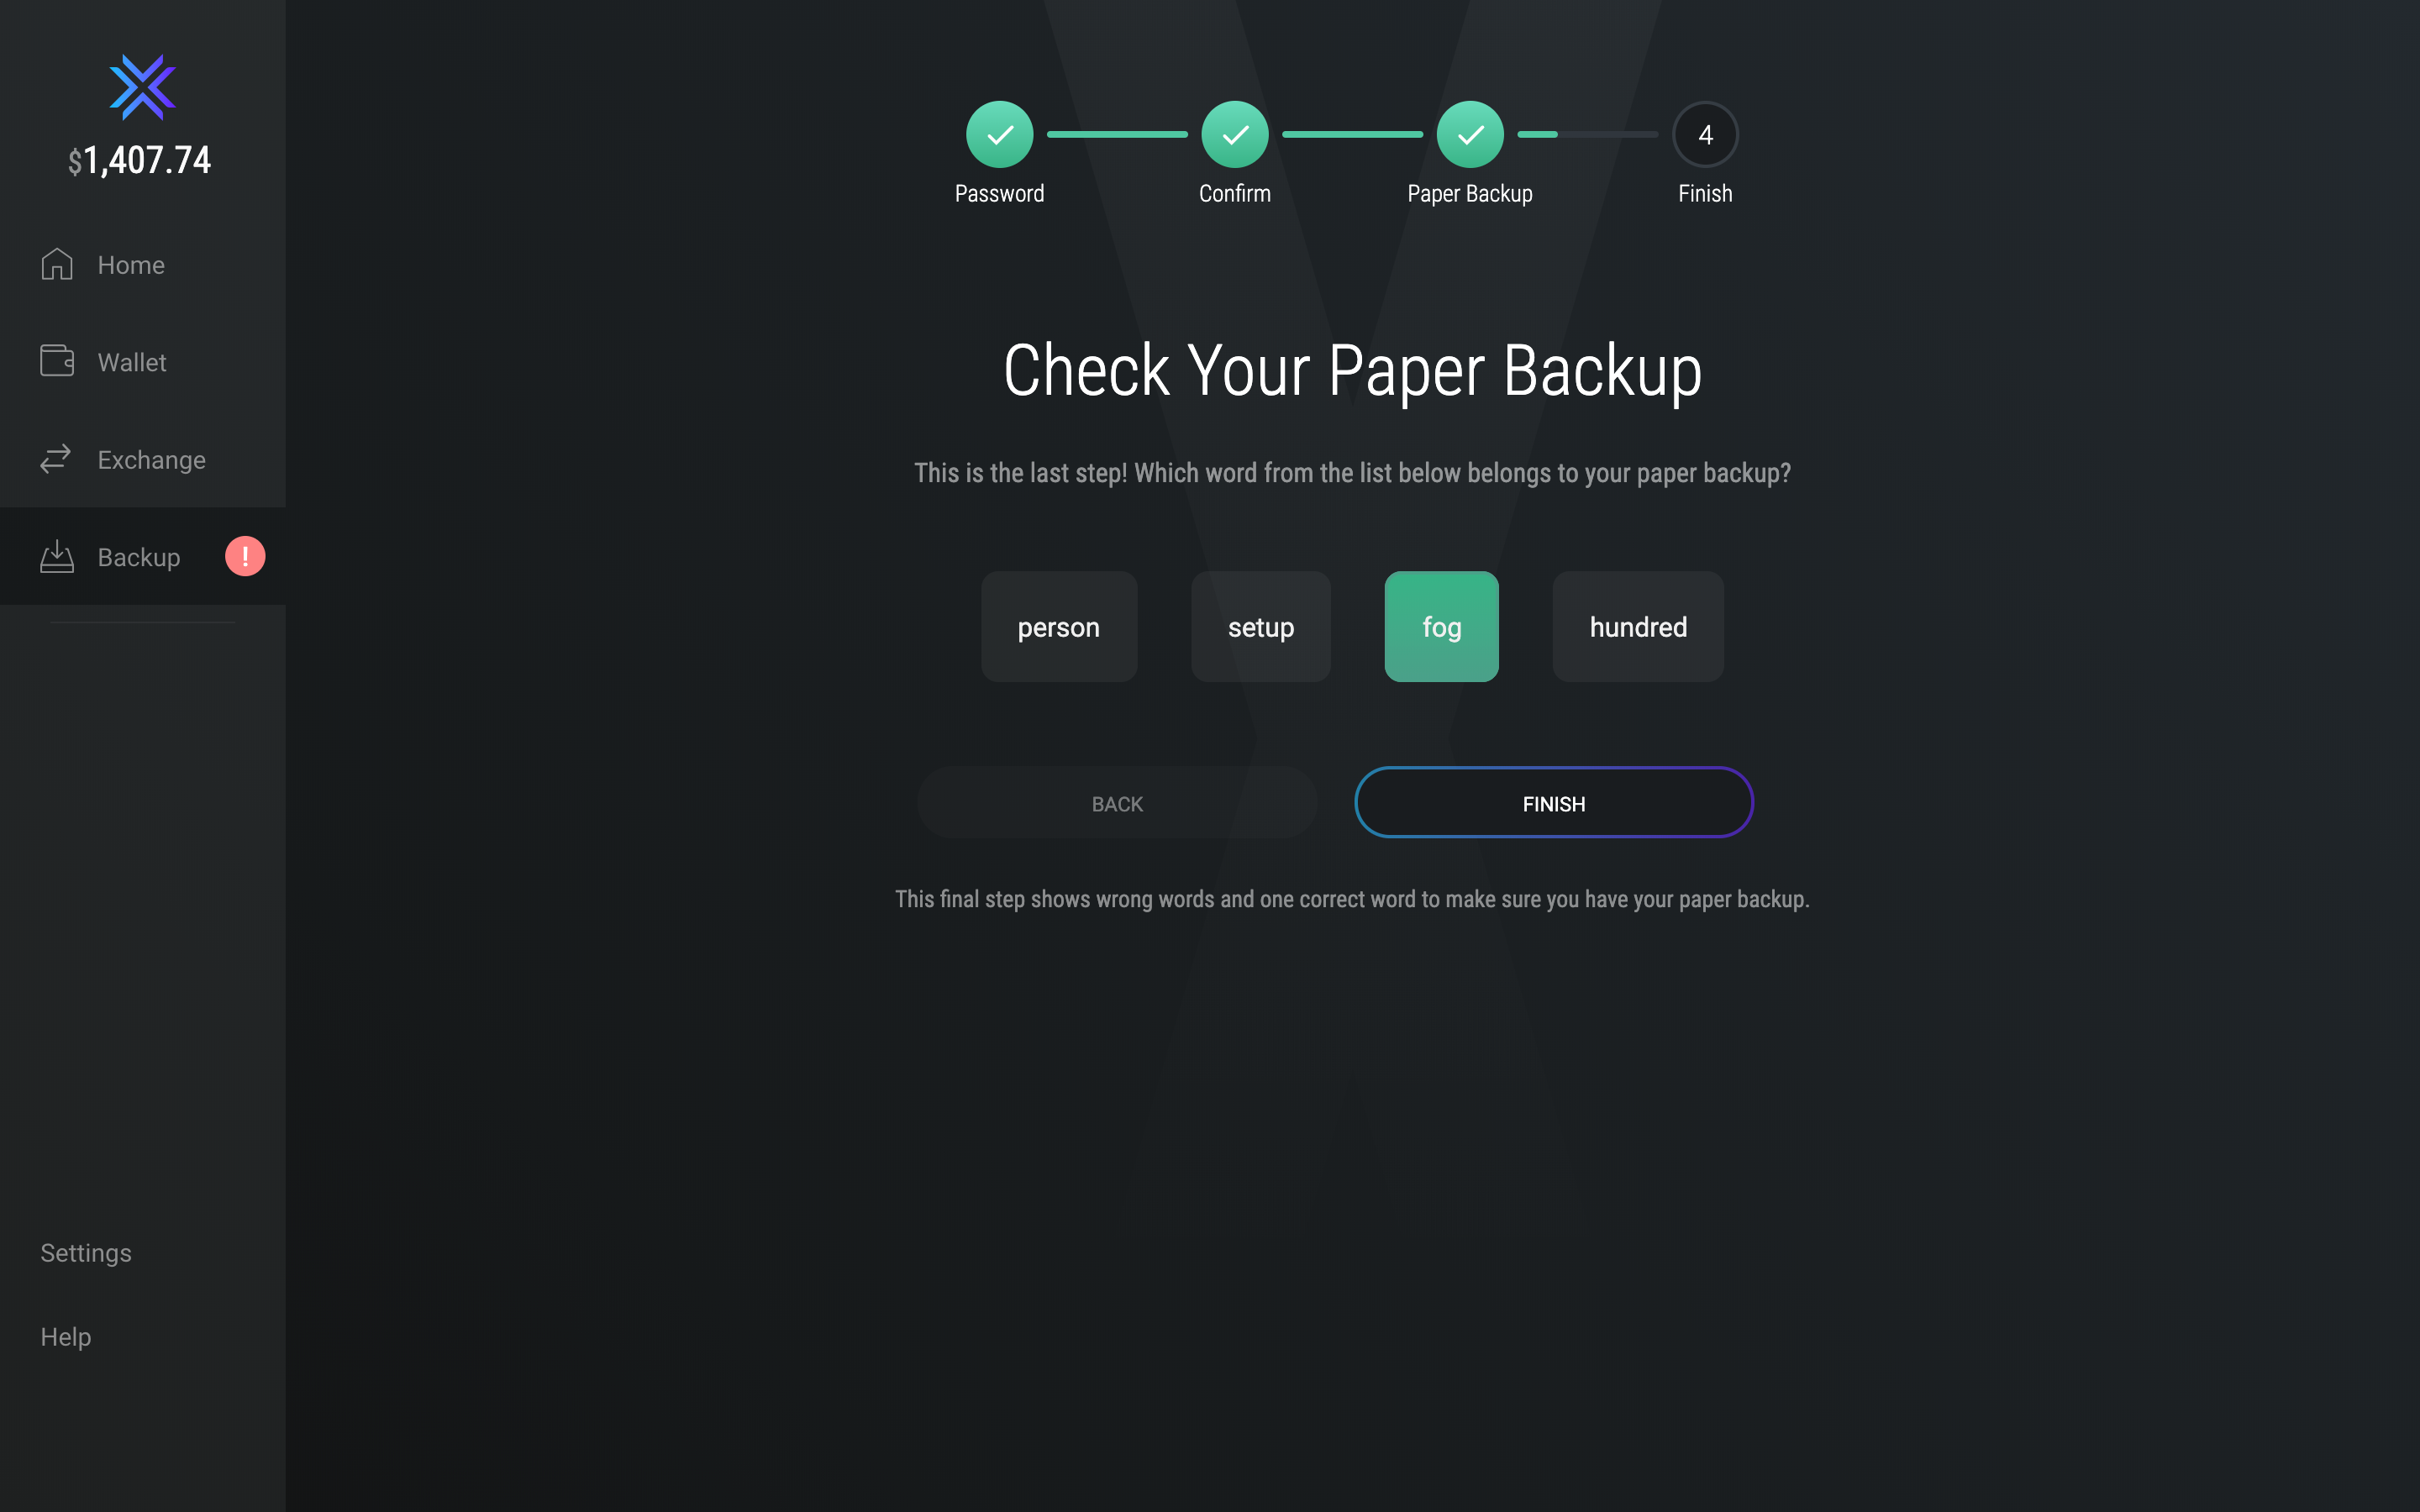 Exodus Wallet - Confirm your Paper Backup